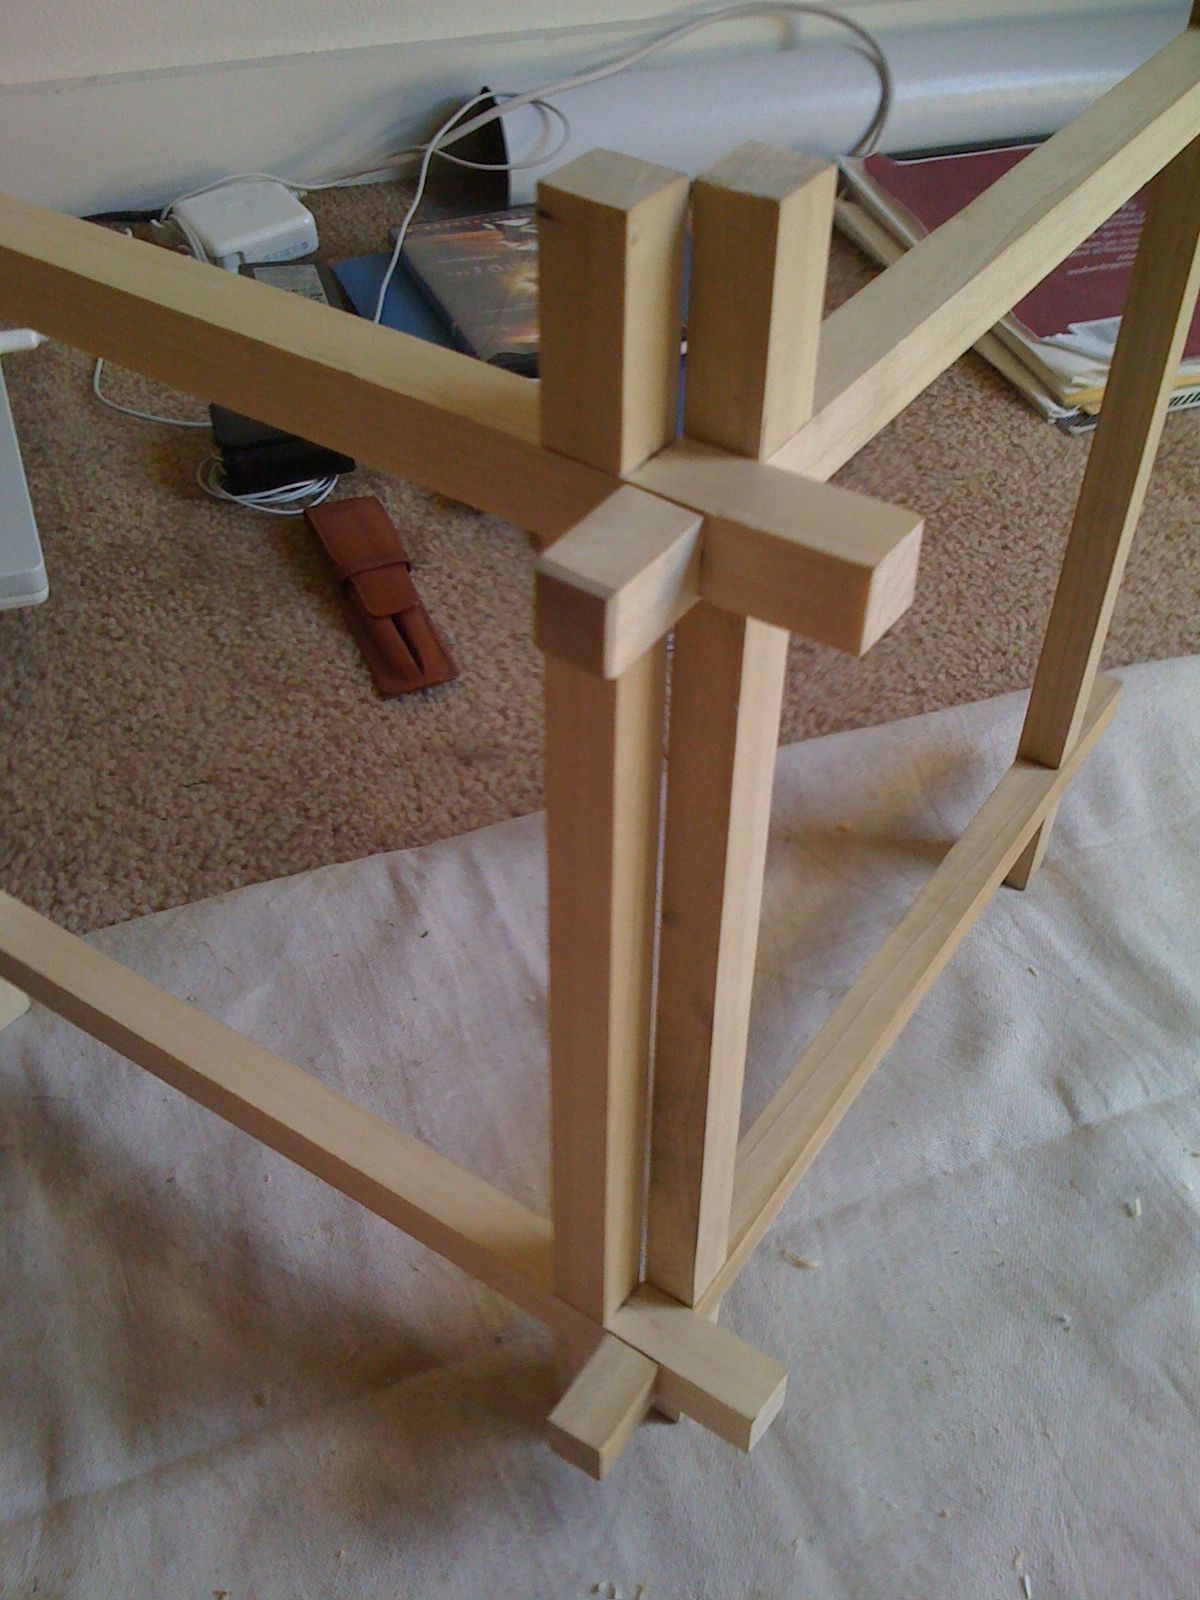 Japanese Joinery Lantern In Progress Wood Joints